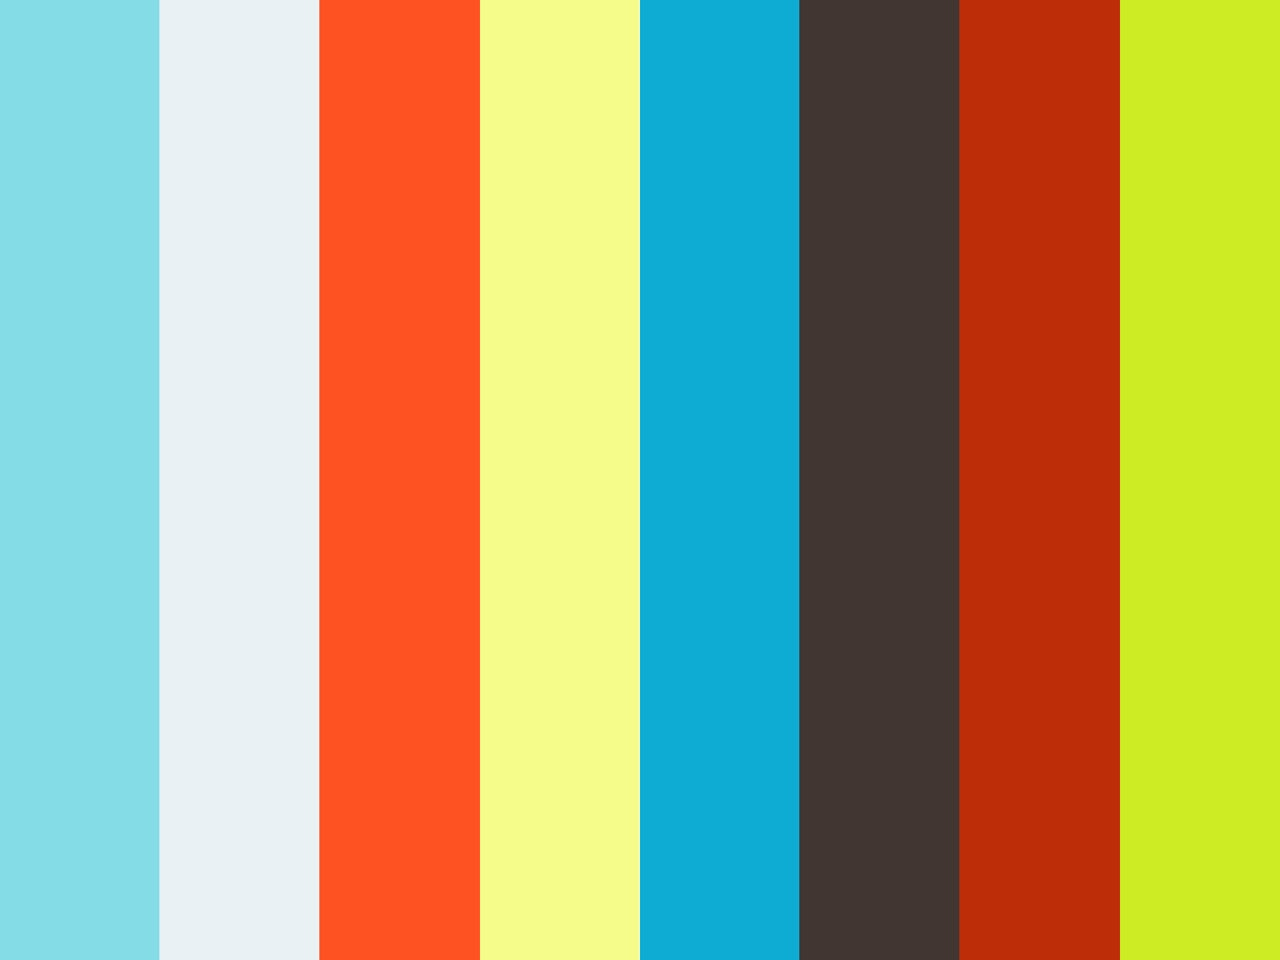 hooray for fish by lucy cousins on vimeo